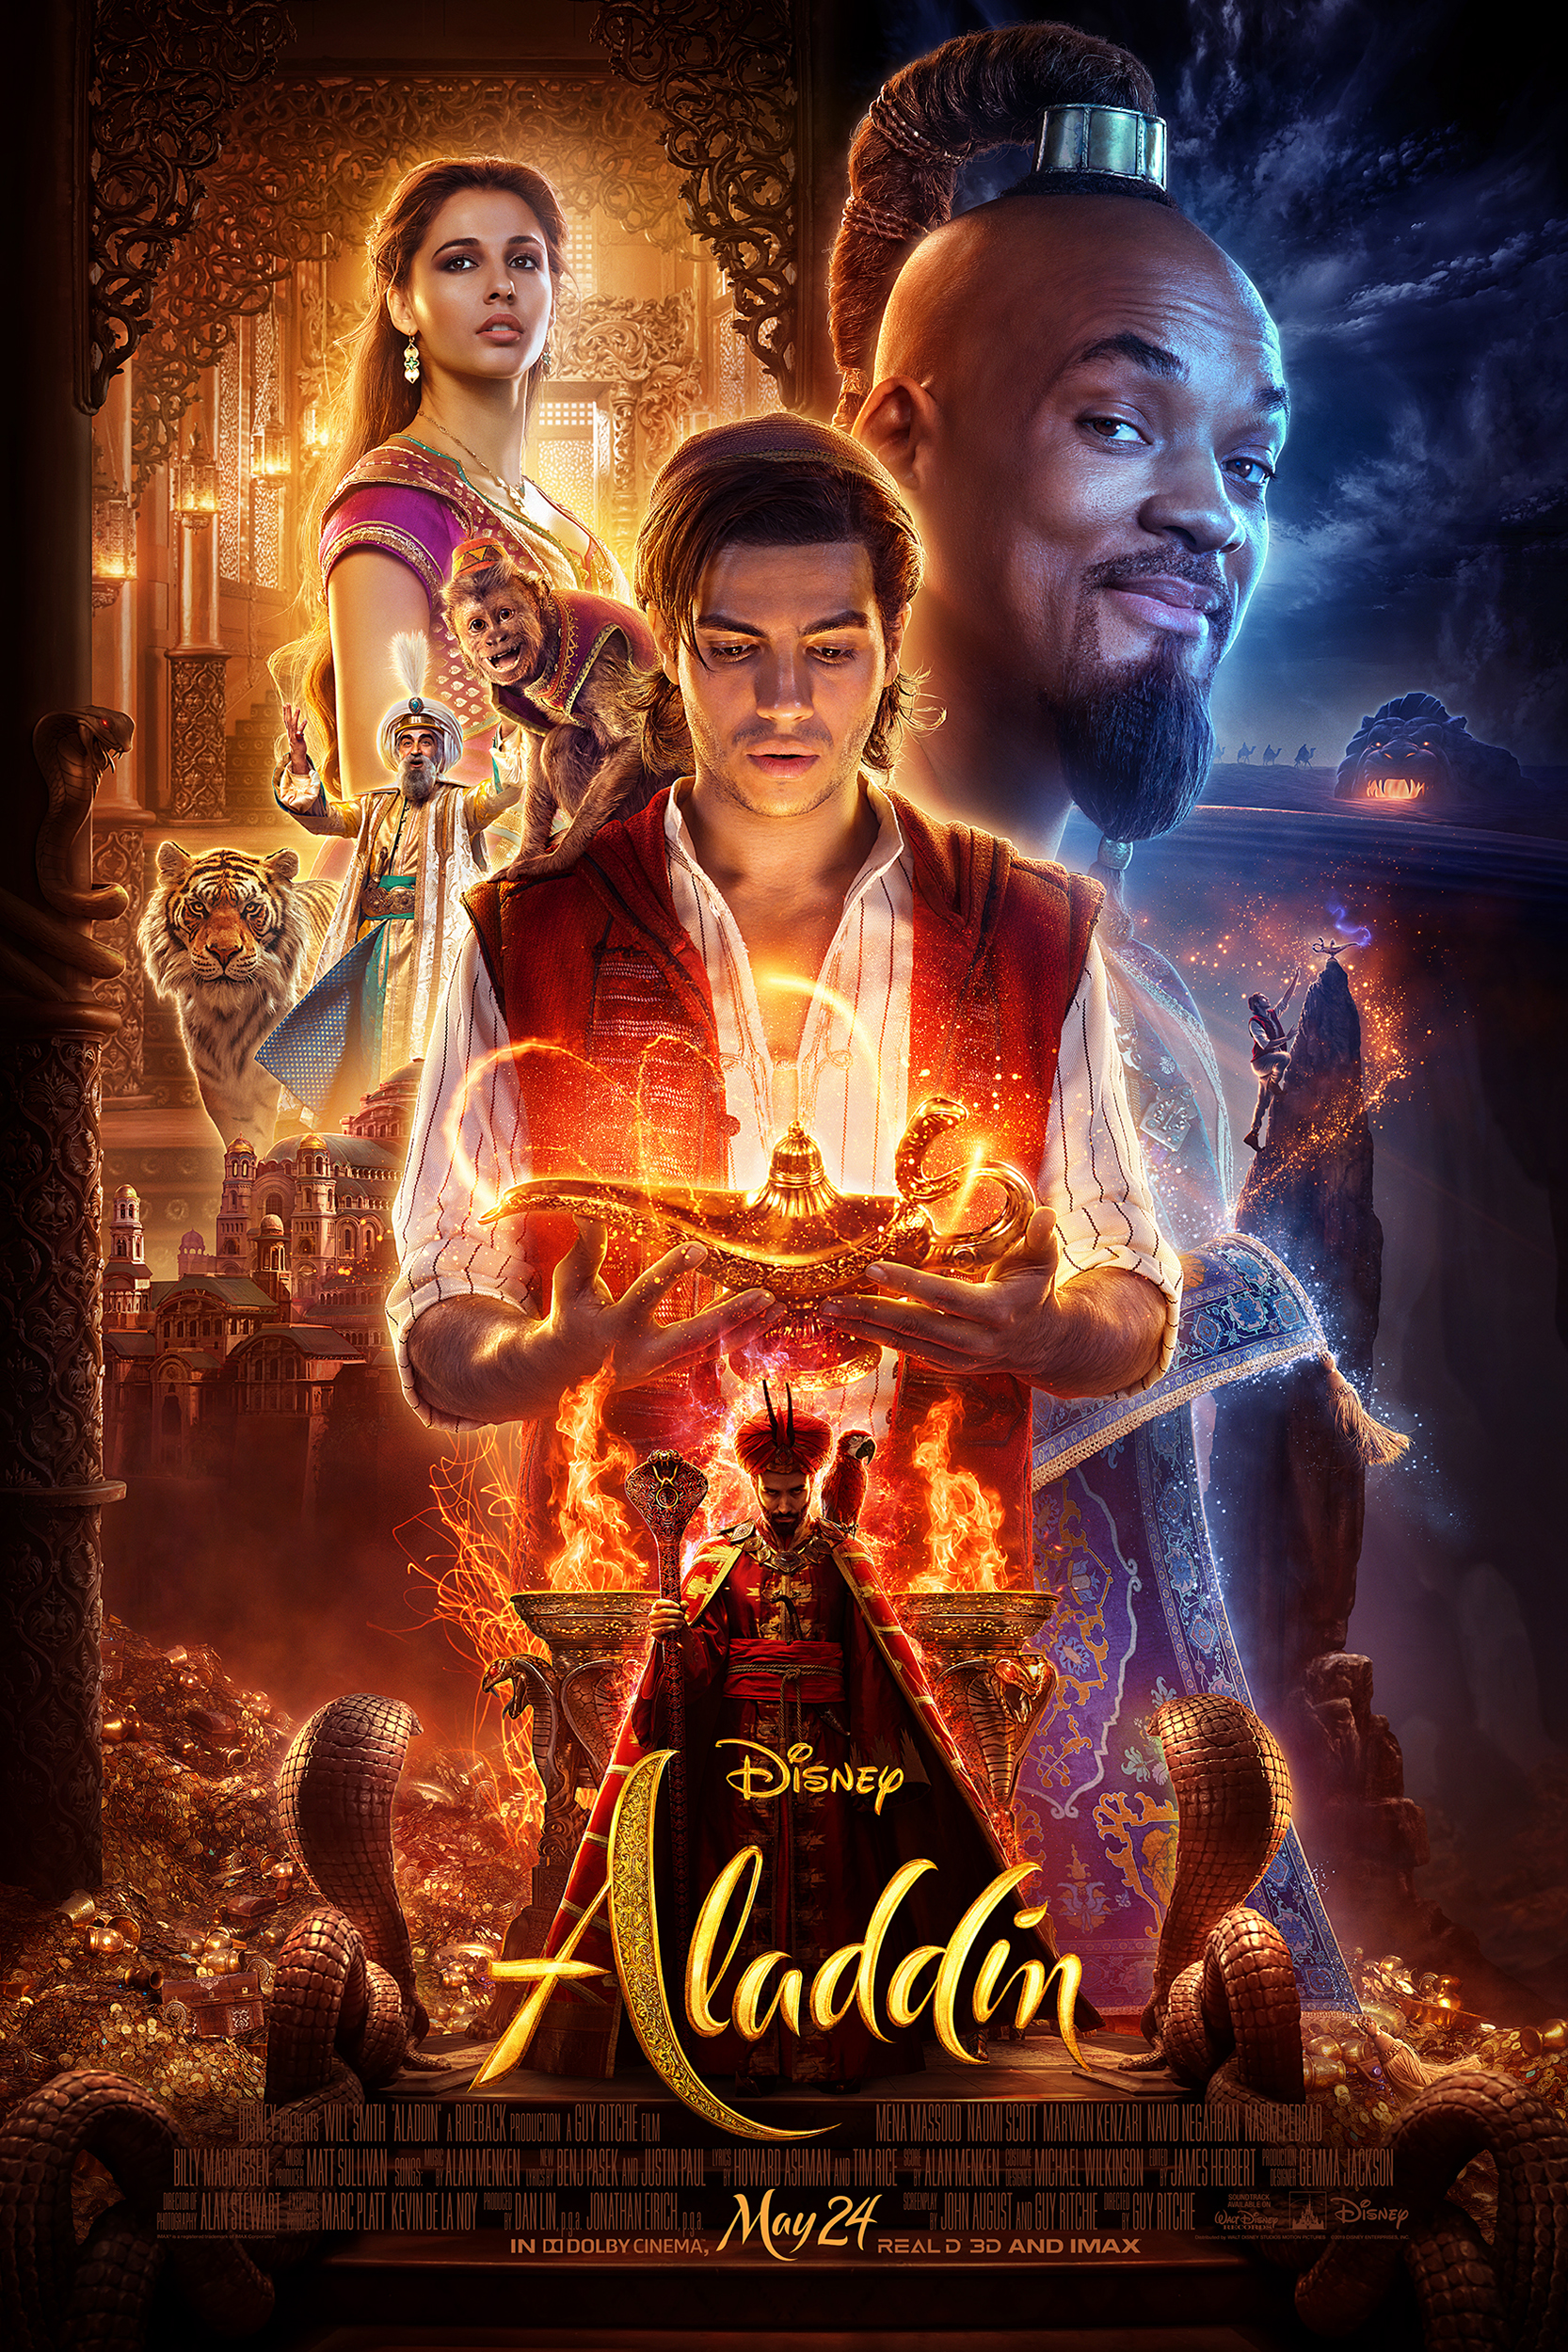 Poster of Aladdin in RealD 3D